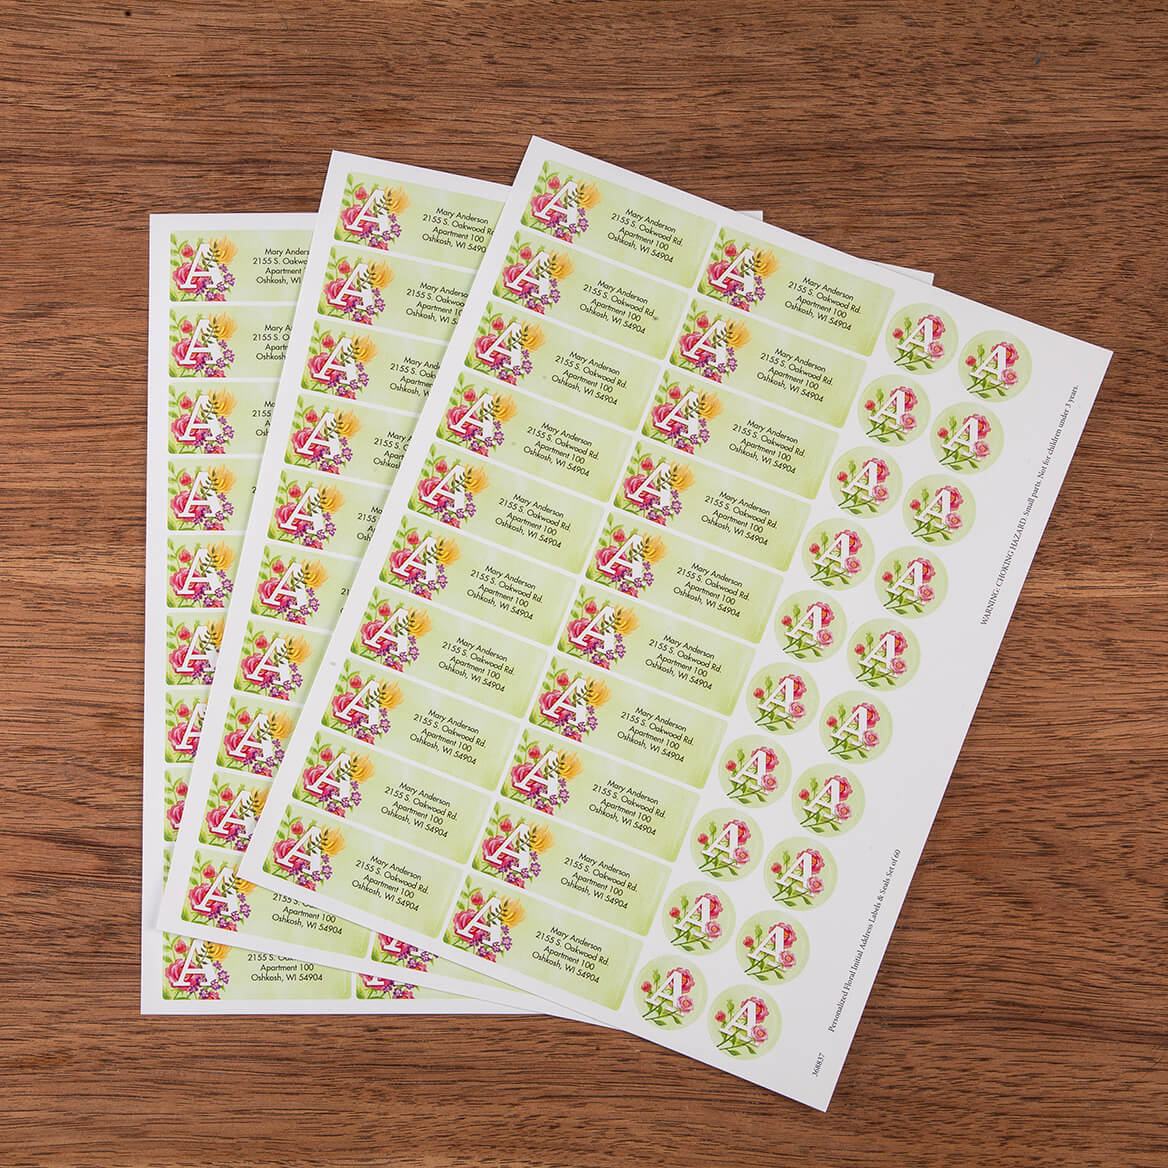 Personalized Floral Initial Address Labels & Seals Set of 60-368837